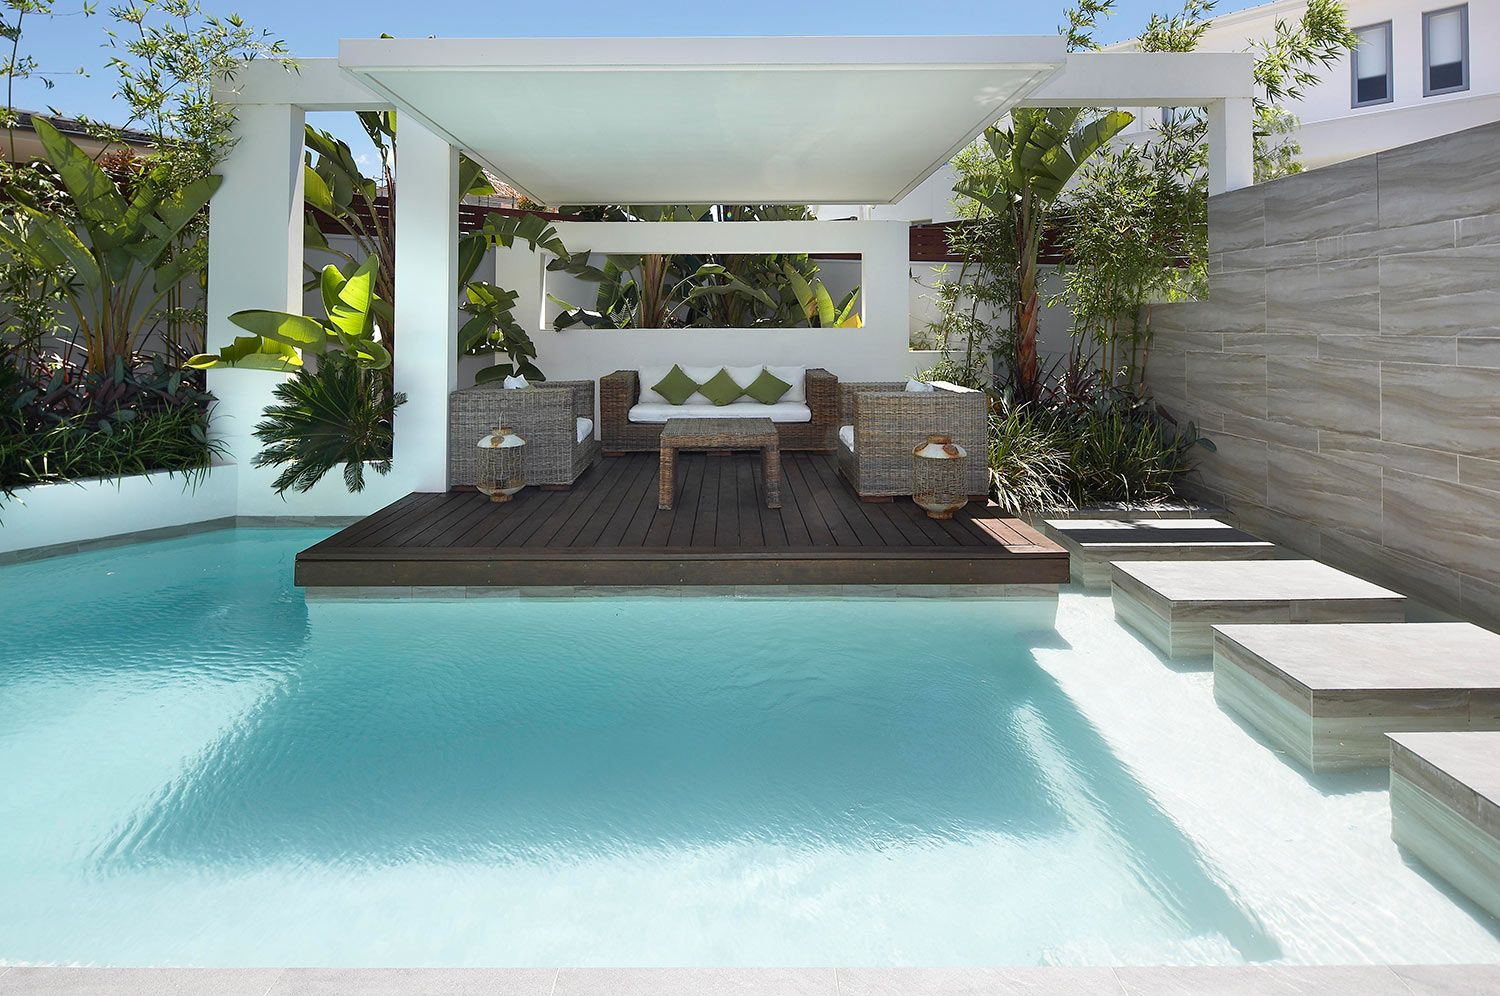 30 Modern Landscape Design Ideas From Rolling Stone Modern Pools Luxury Swimming Pools Outdoor Rooms Modern outdoor pool ideas